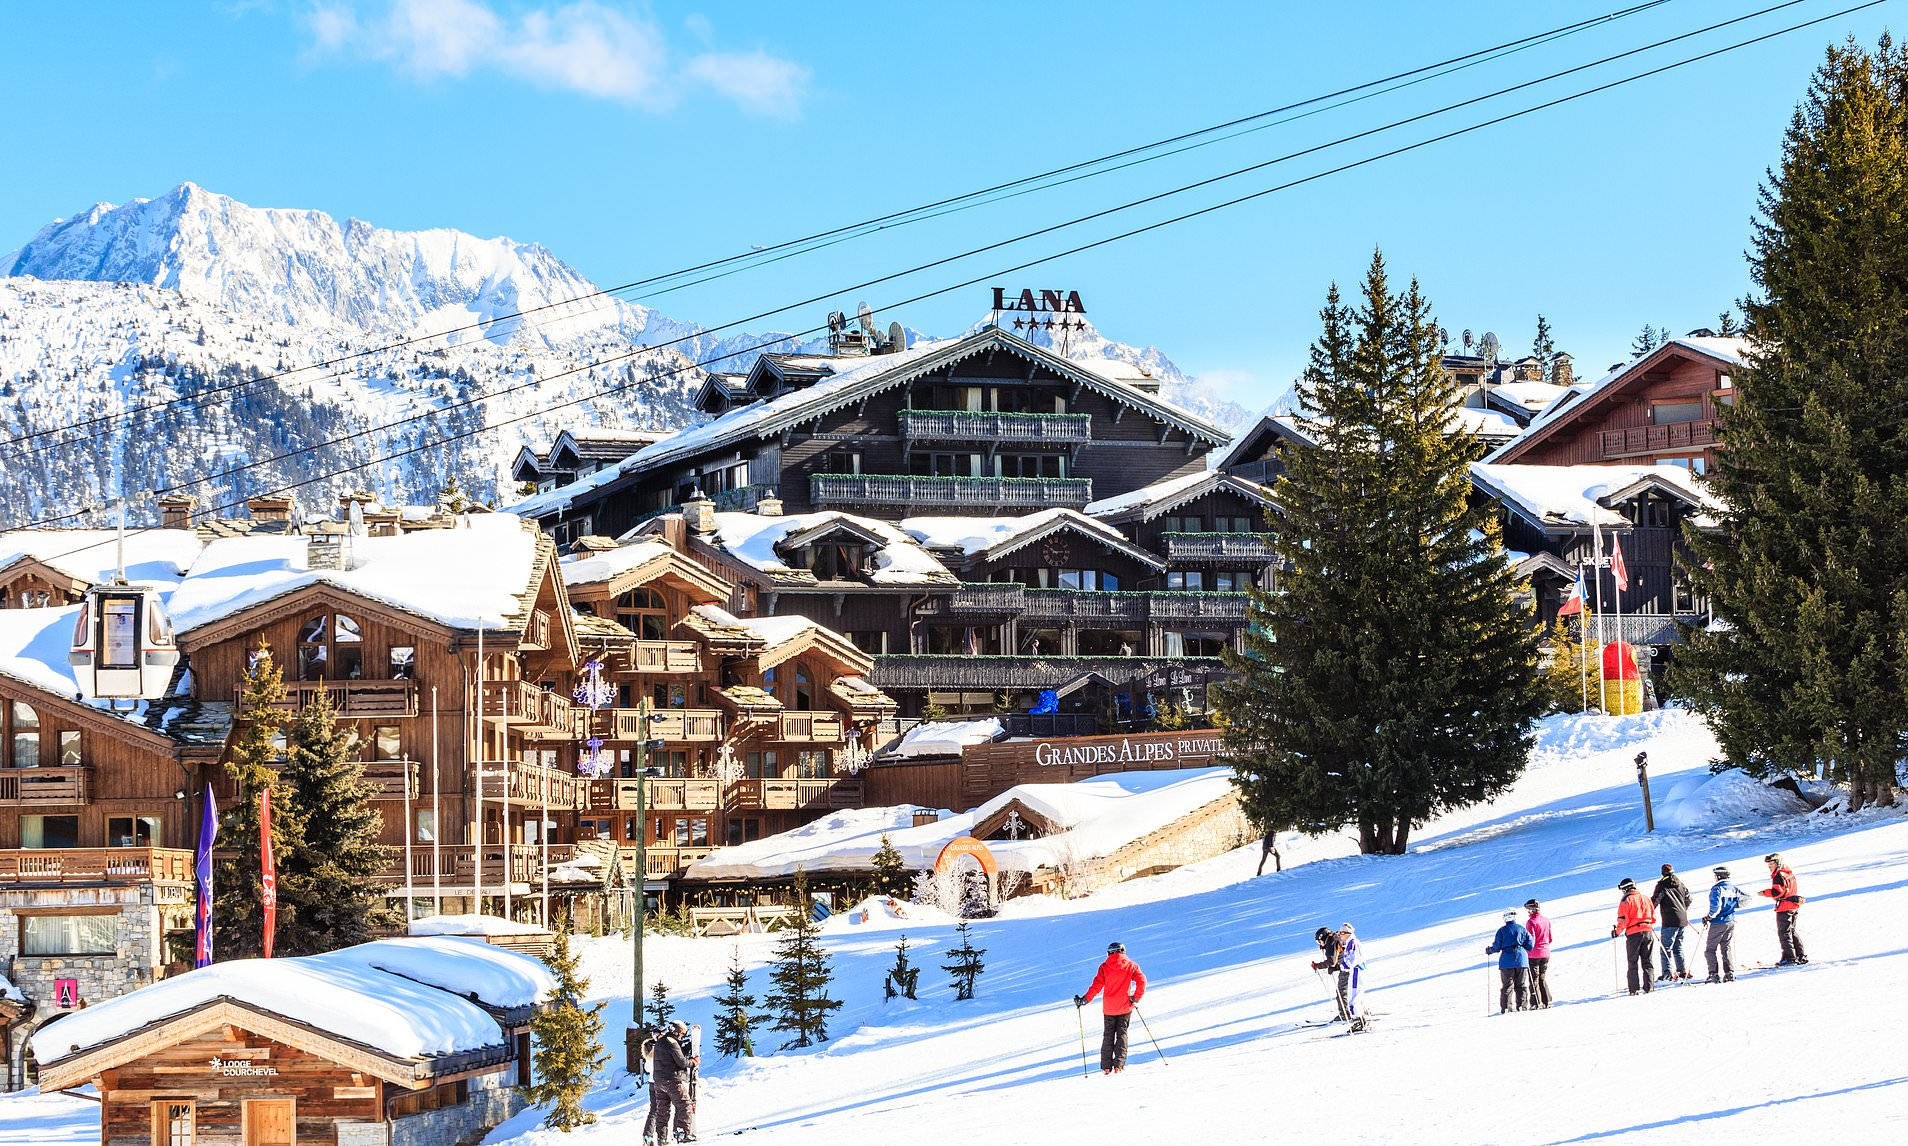 ski accommodation options